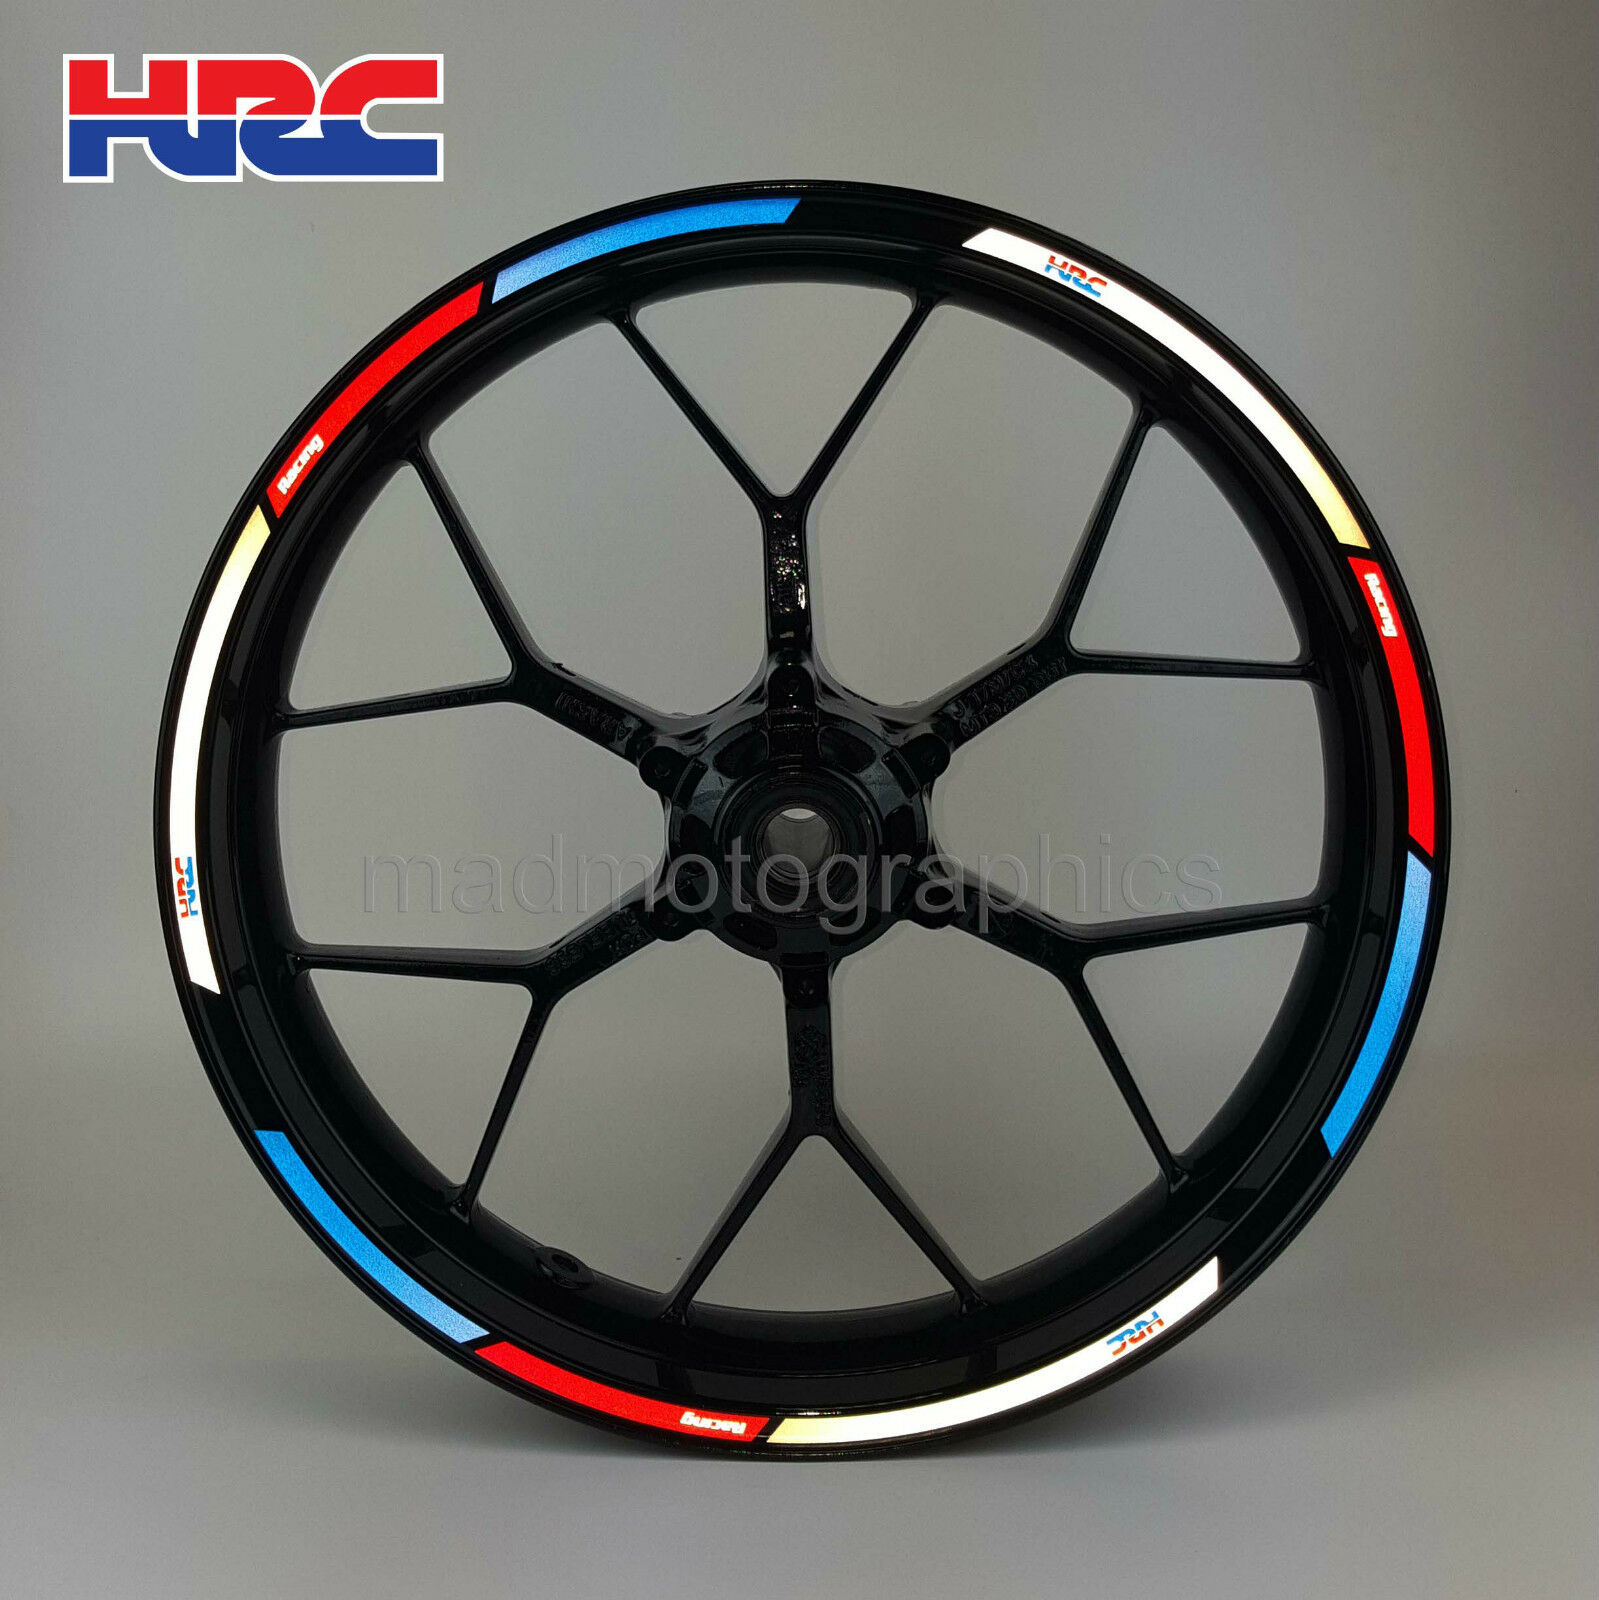 Hrc Reflective Motorcycle Wheel Decals Rim Stickers Stripes Honda Cbr600rr Series Slip On Exhaust M 2 Carbon Fiber Canister Hitam 1 Of 5free Shipping